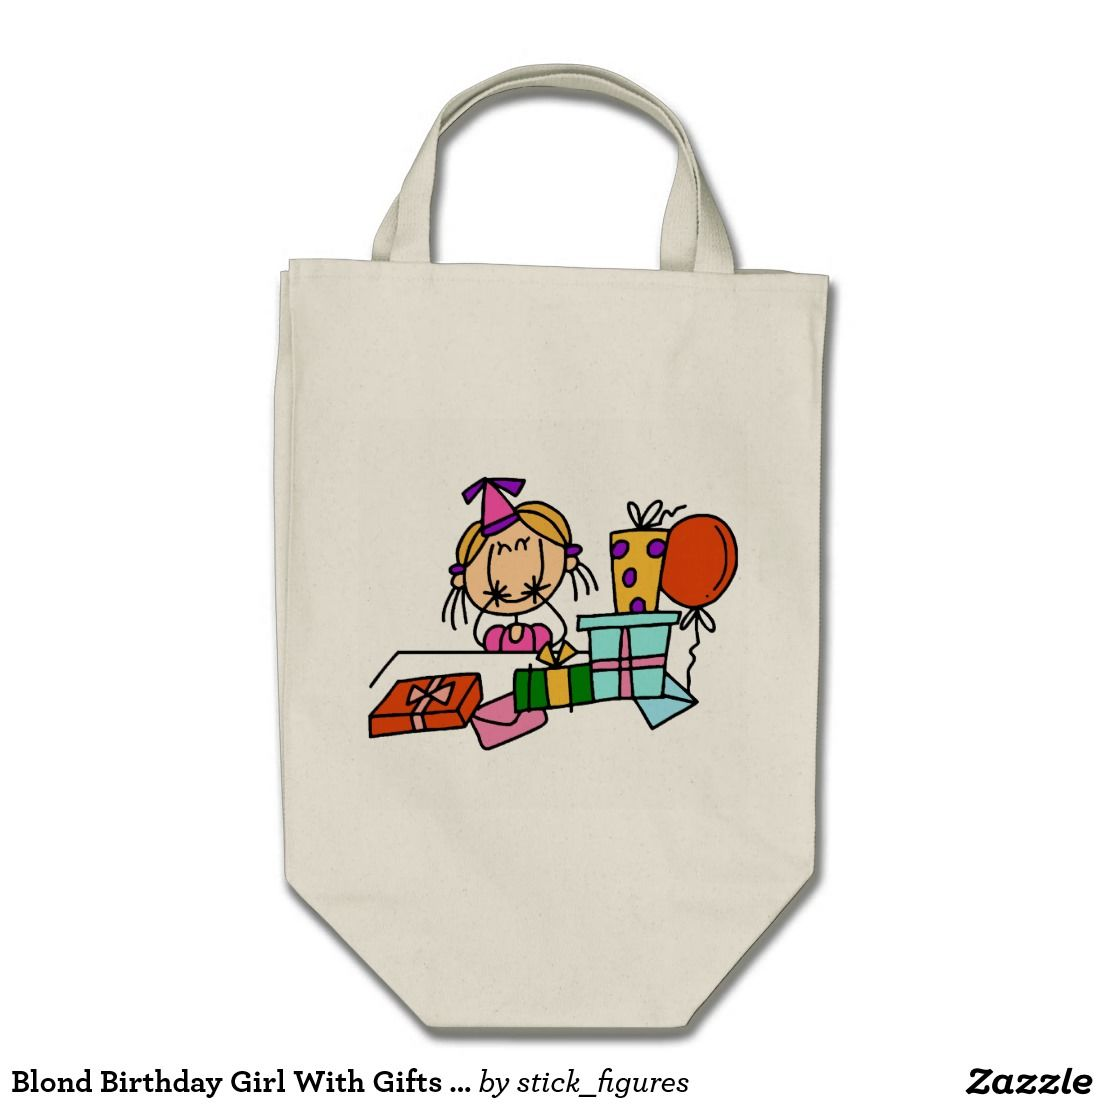 Blond Birthday Girl With Gifts T-shirts and Gifts Bag